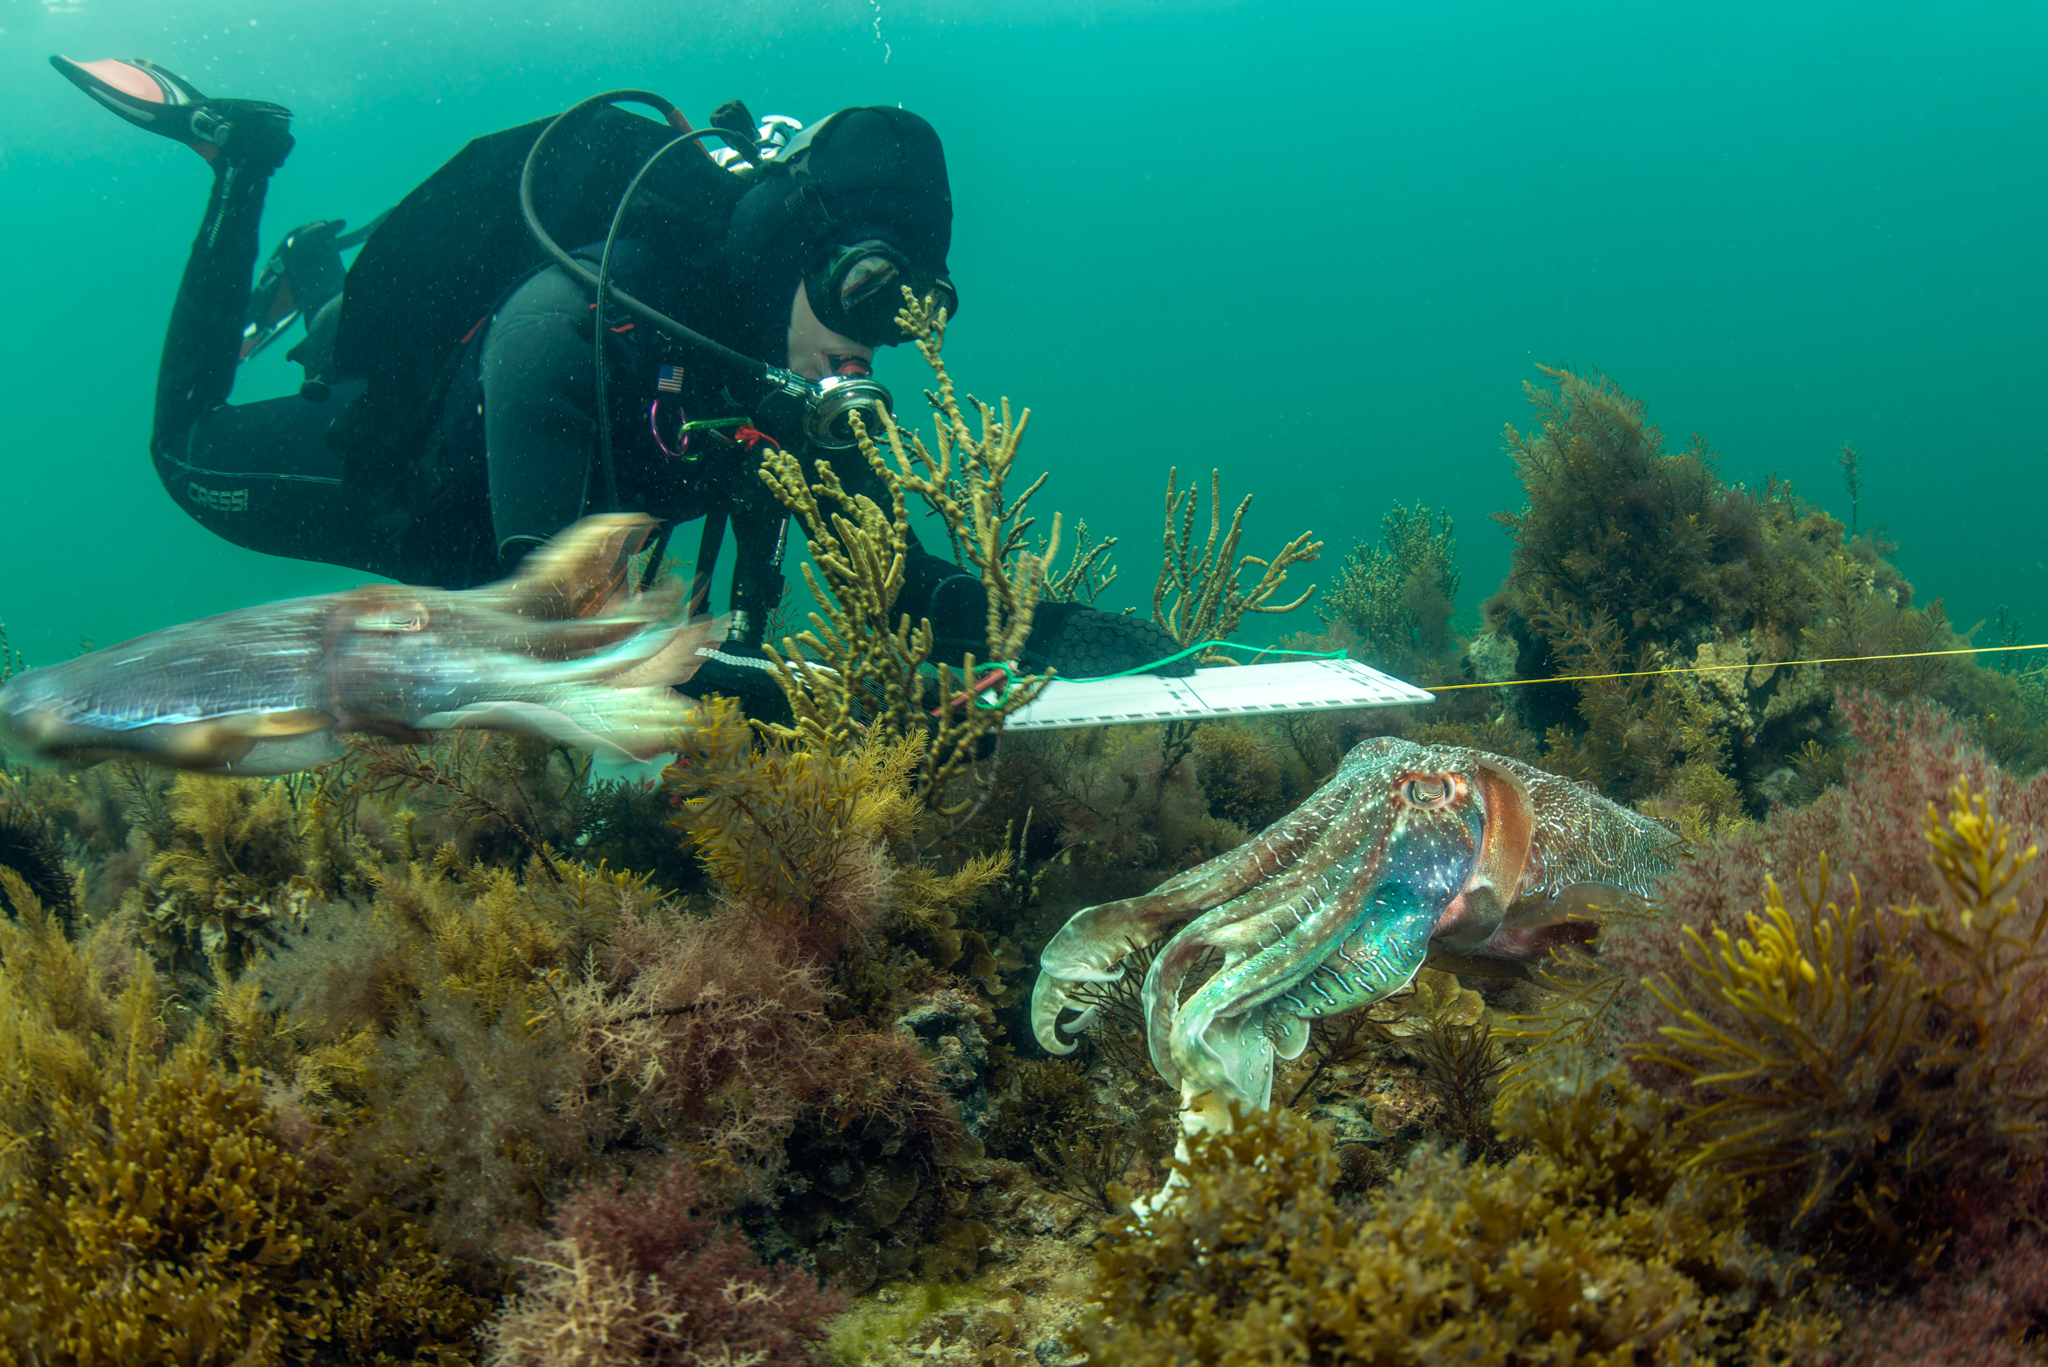 Since the formation of a cross-government cuttlefish working group in July 2012, several research projects have investigated concerns about the significant decline of cuttlefish numbers during the annual winter breeding aggregation in the Spencer Gulf.